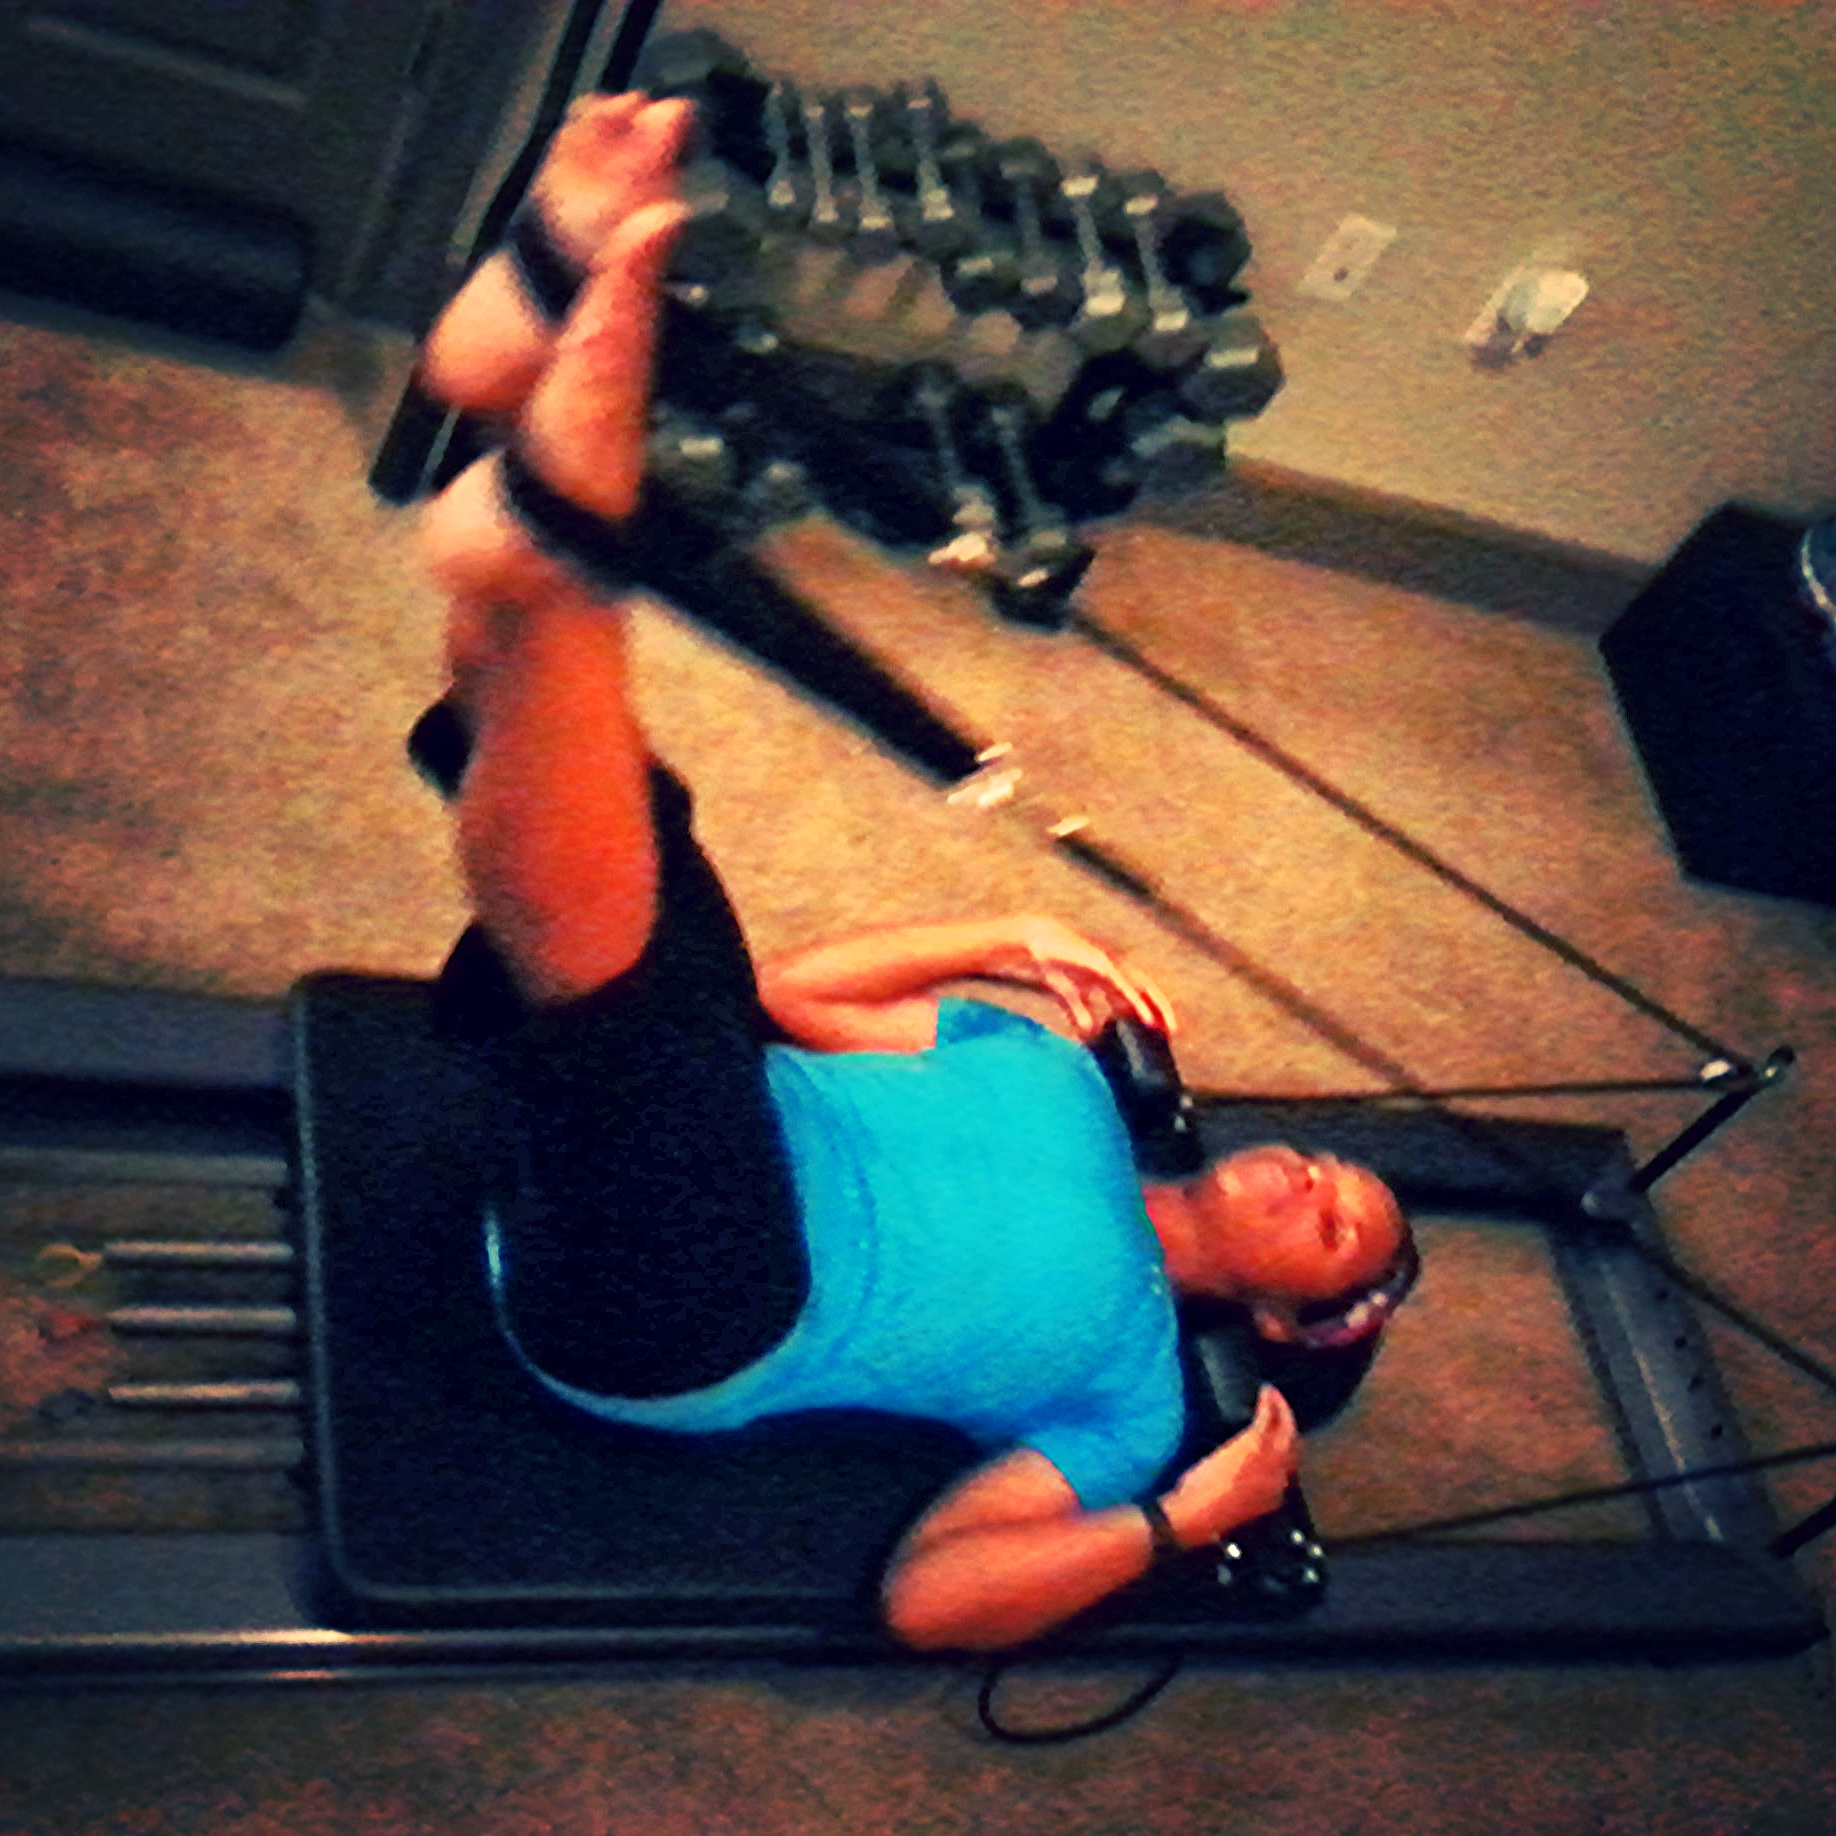 Stretching on the Reformer